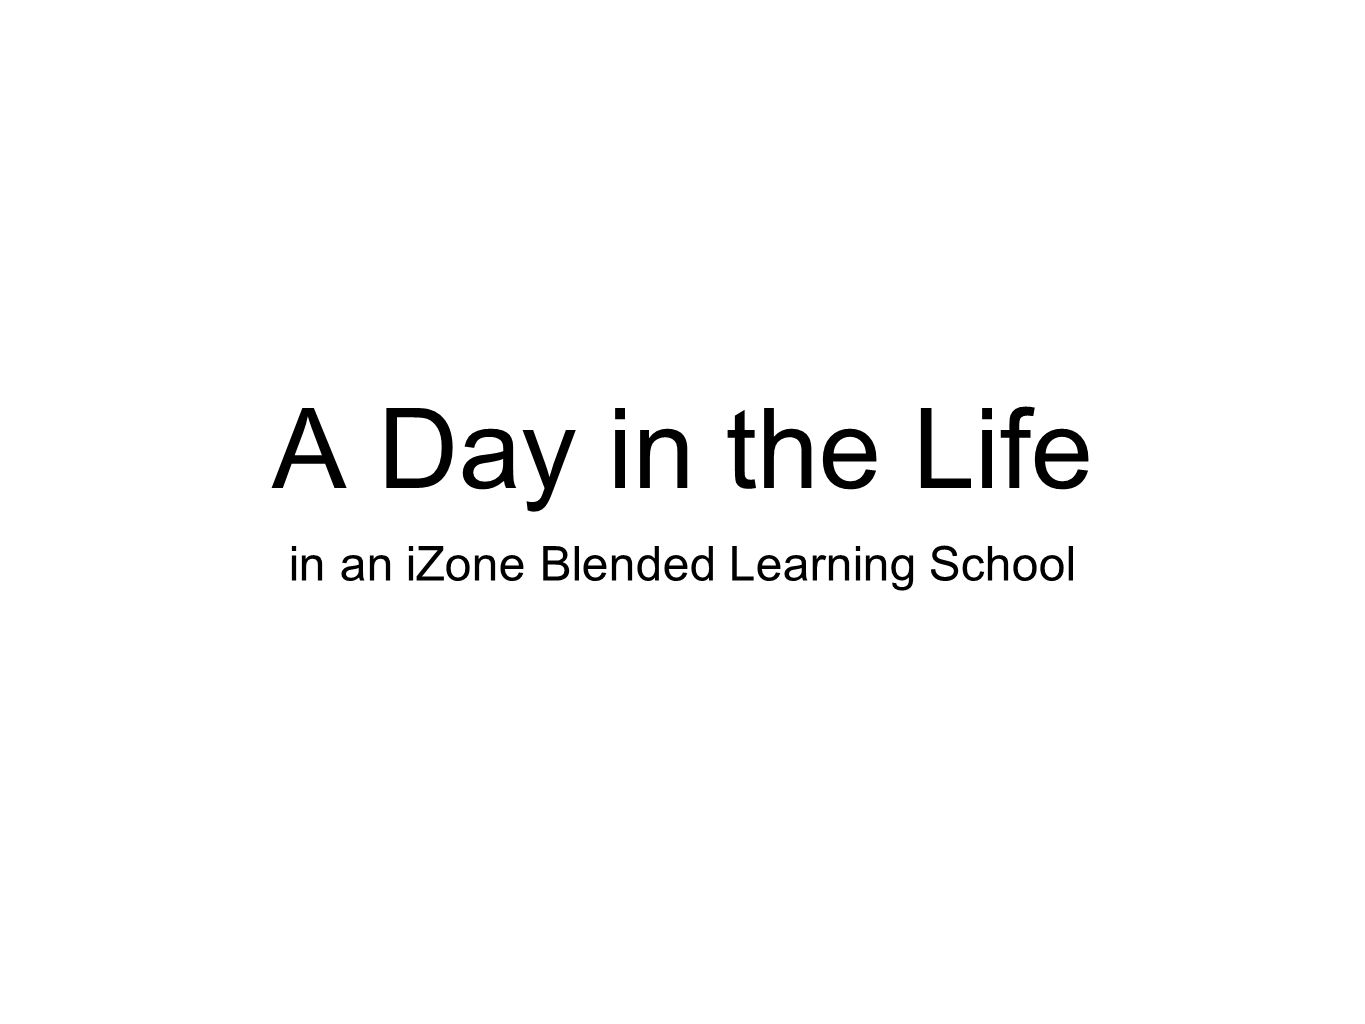 A Day in the Life in an iZone Blended Learning School